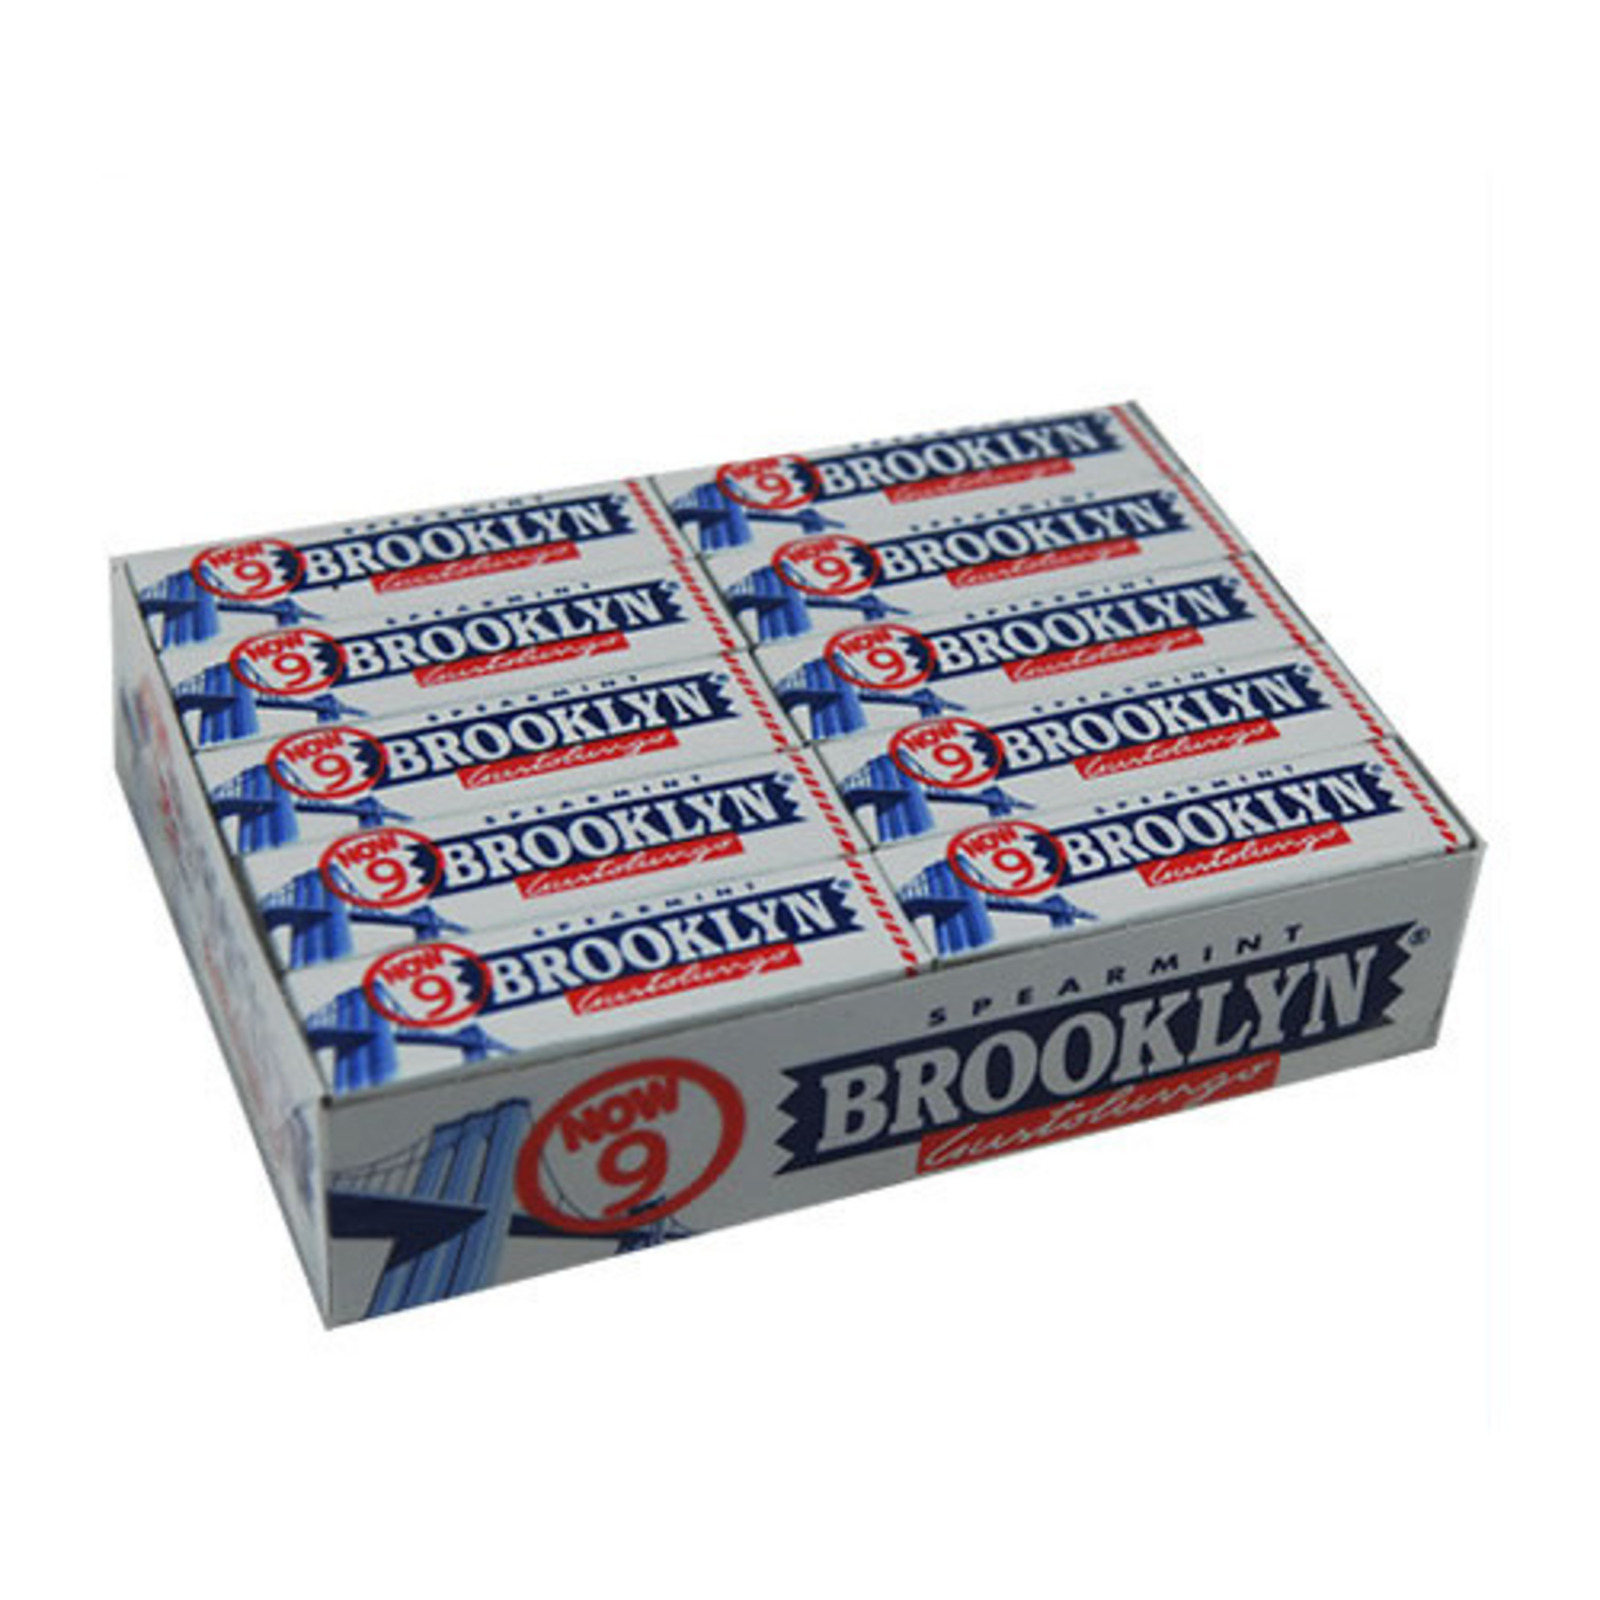 Brooklyn Spearmint Chewing Gum - Cool Hunting